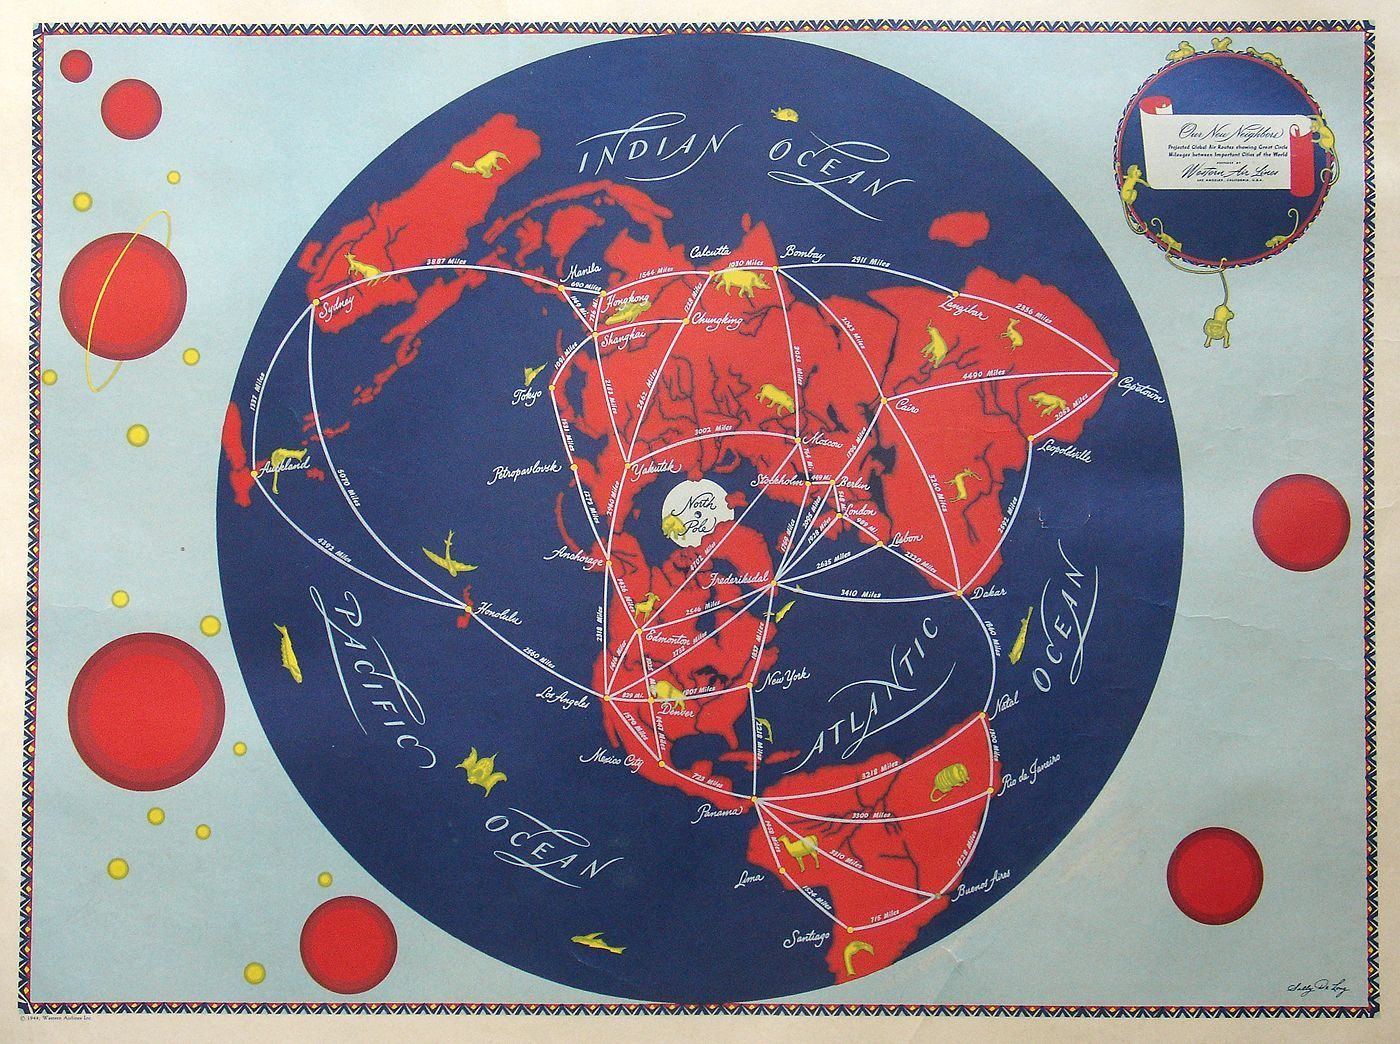 airline connections map by Sally De Long in 1944